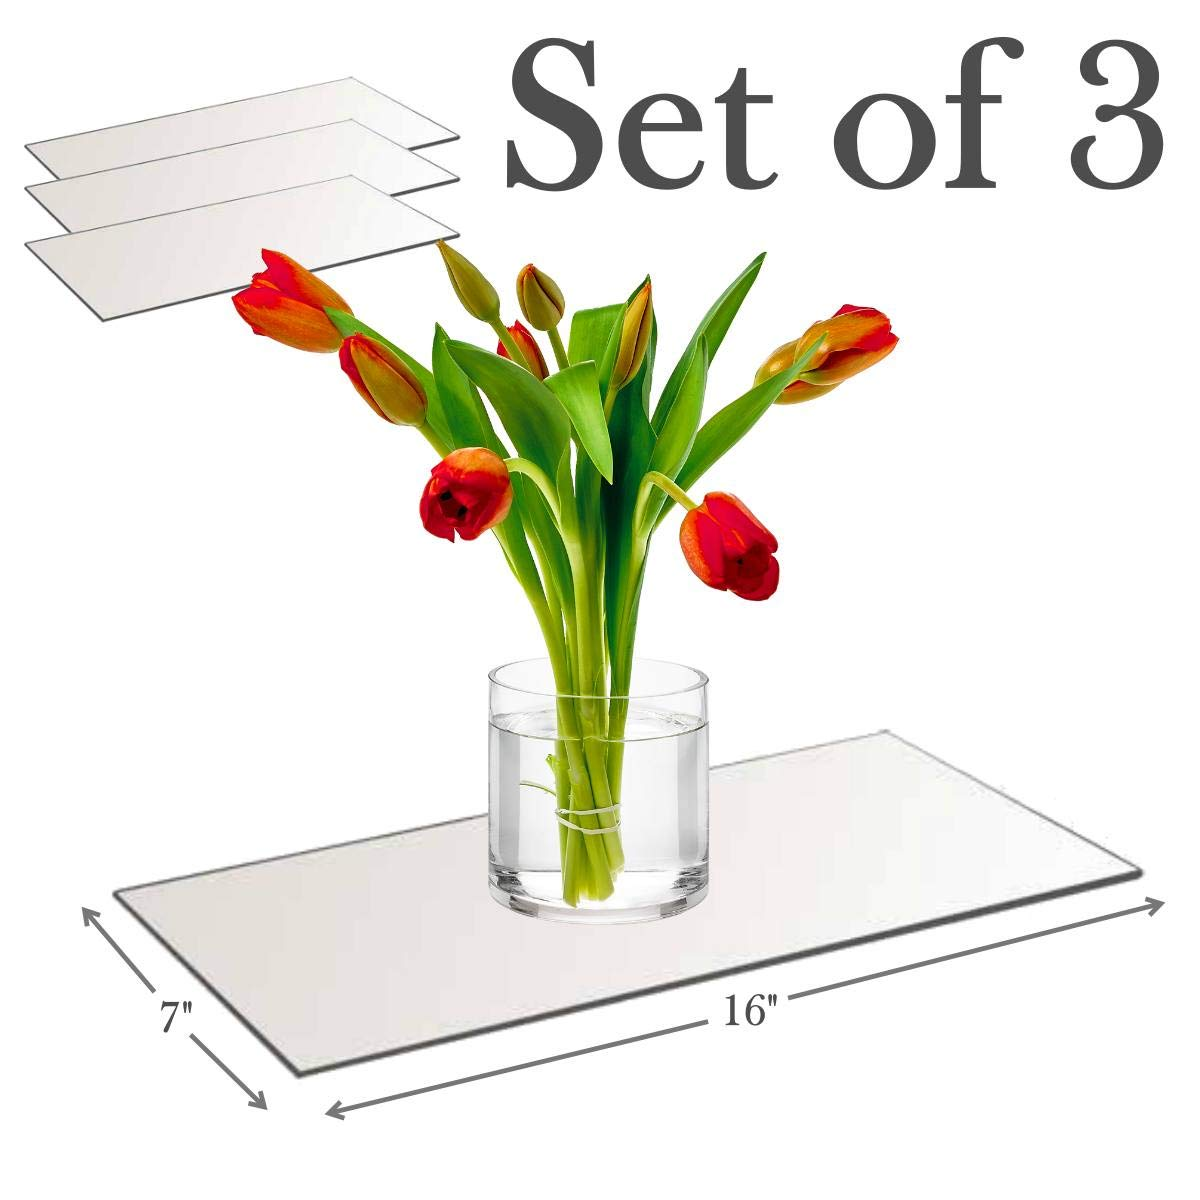 7''x16'' Rectangle Mirror Plate with Round Edge Set of 3 - Glass Mirror Tray, Base for Wedding Centerpieces, Candles and Wall Decor